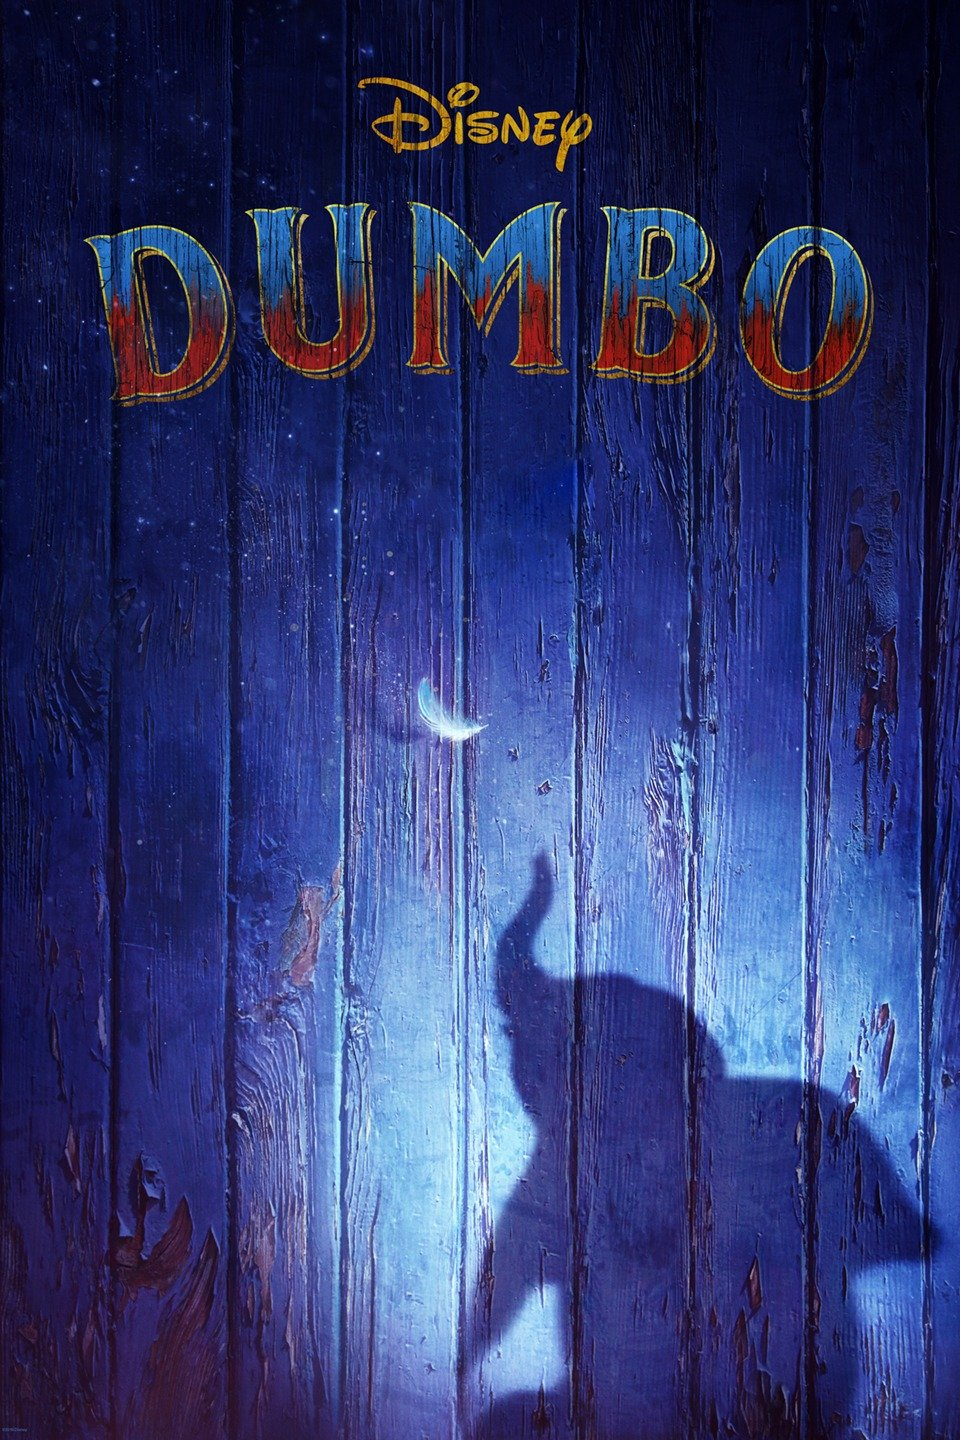 Dumbo, which will be released in 2019, is one of numerous upcoming live-action adaptations.